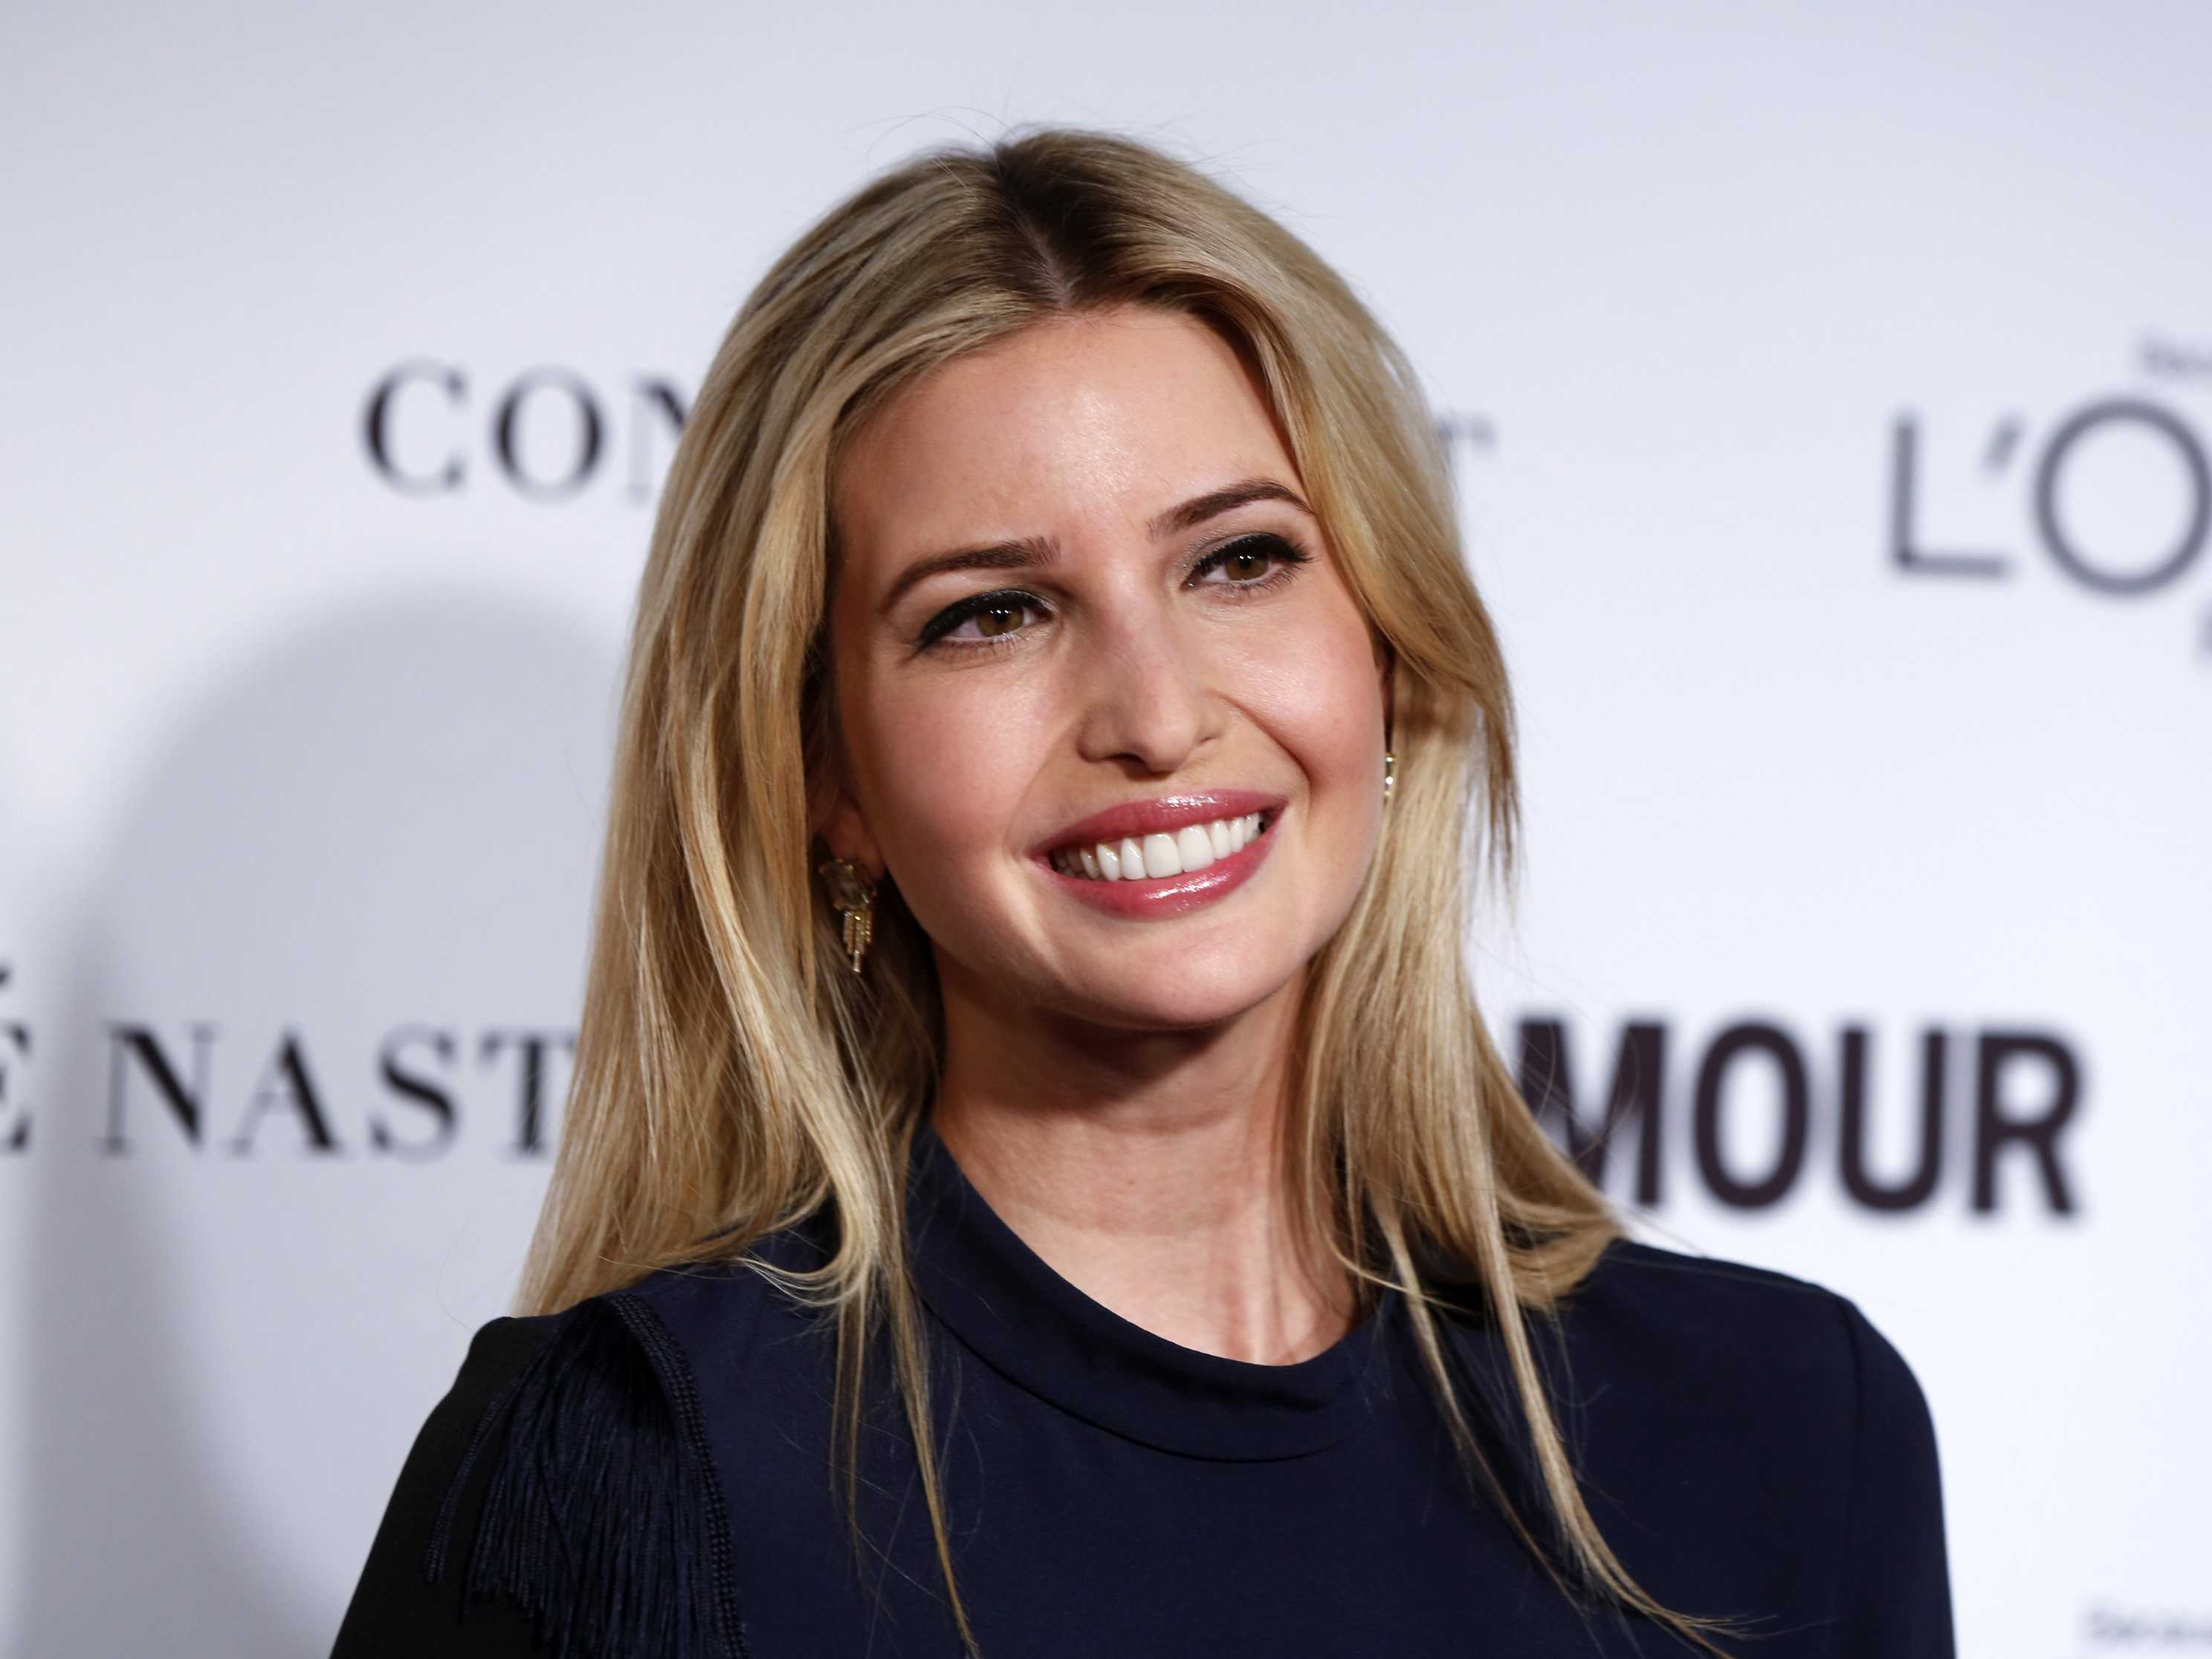 From rich Manhattan girl, to businesswoman, to now politician and daughter of the President of the United State, Ivanka Trump's style has developed over the years. (Photo: Archive)